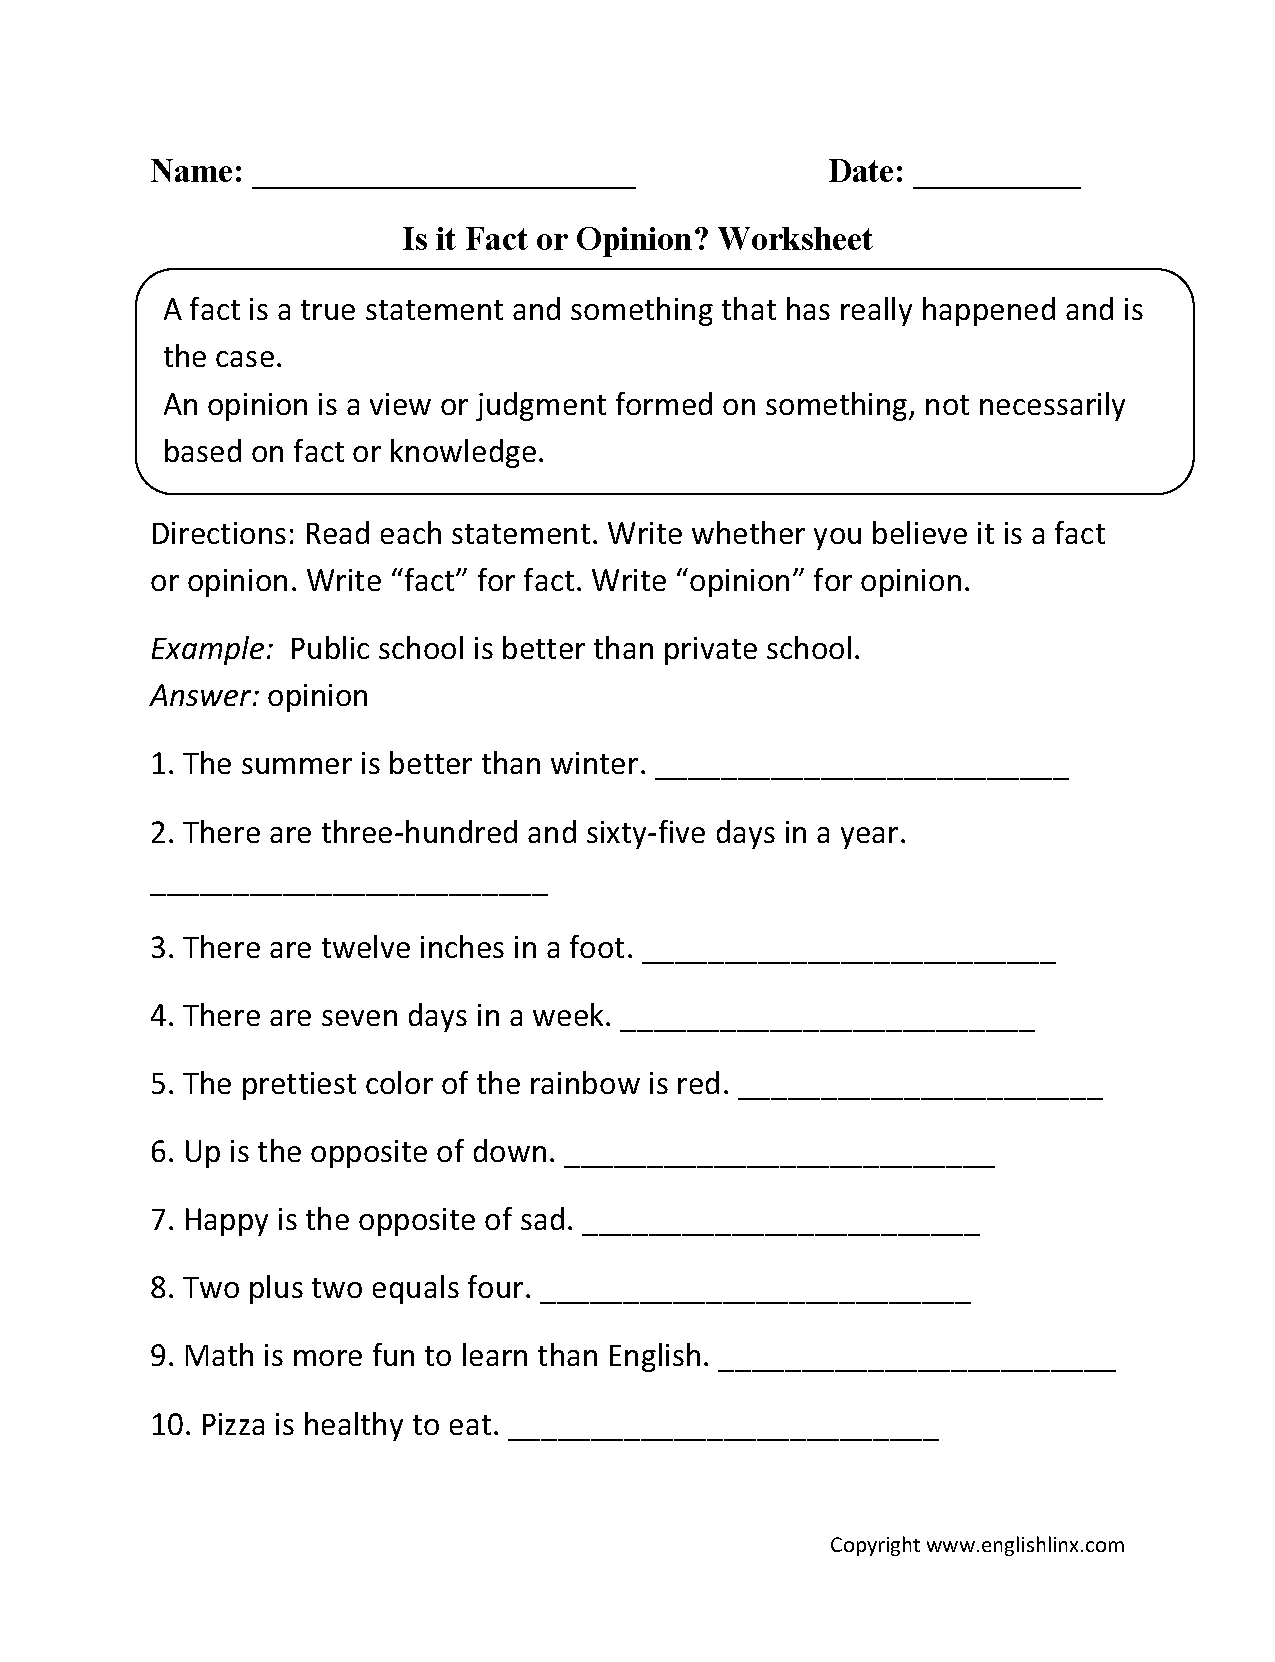 Printables Fact Or Opinion Worksheet reading worksheets fact and opinion is it or worksheet